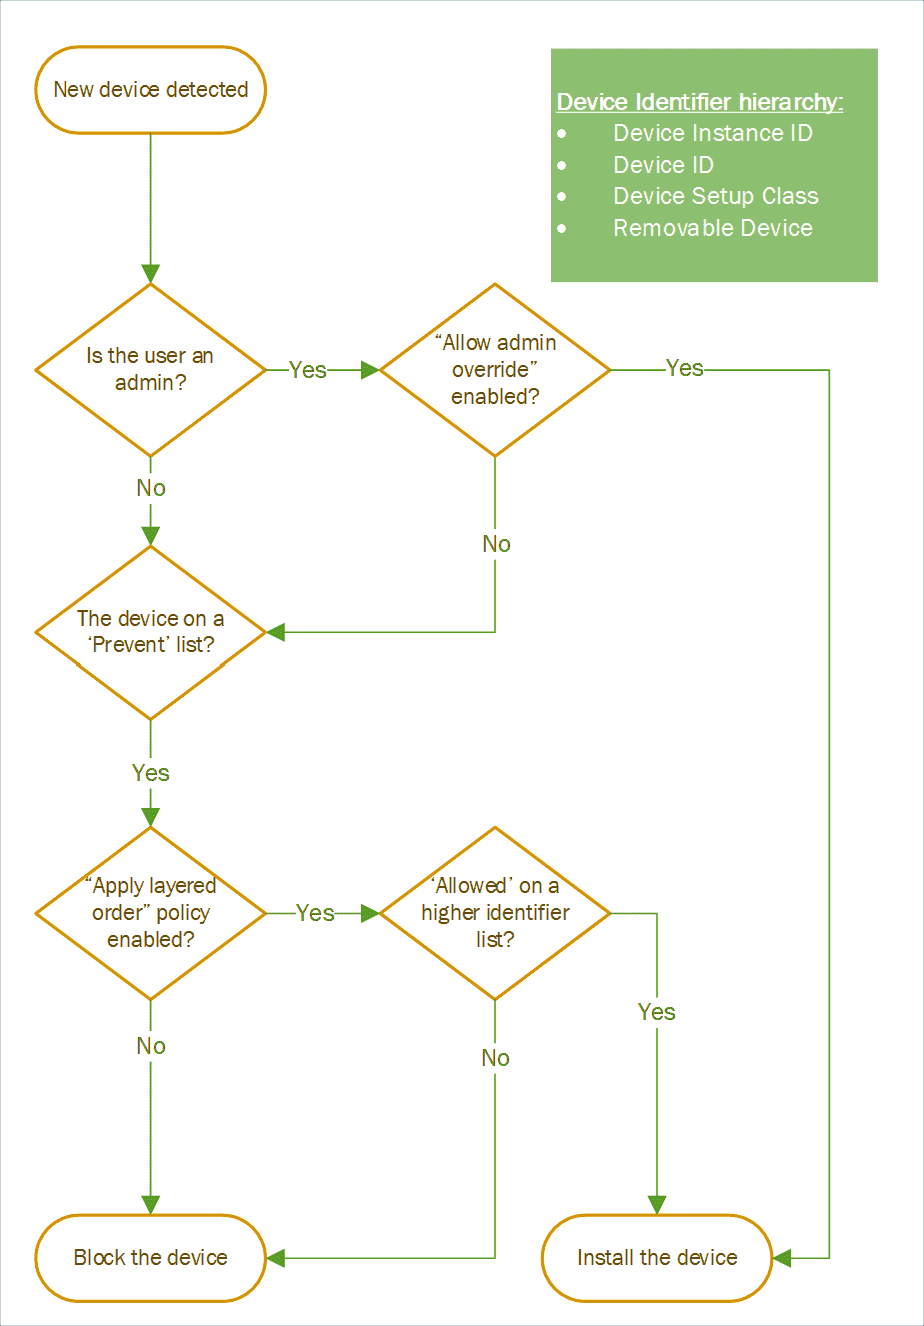 Decision tree for processing the settings for device installation